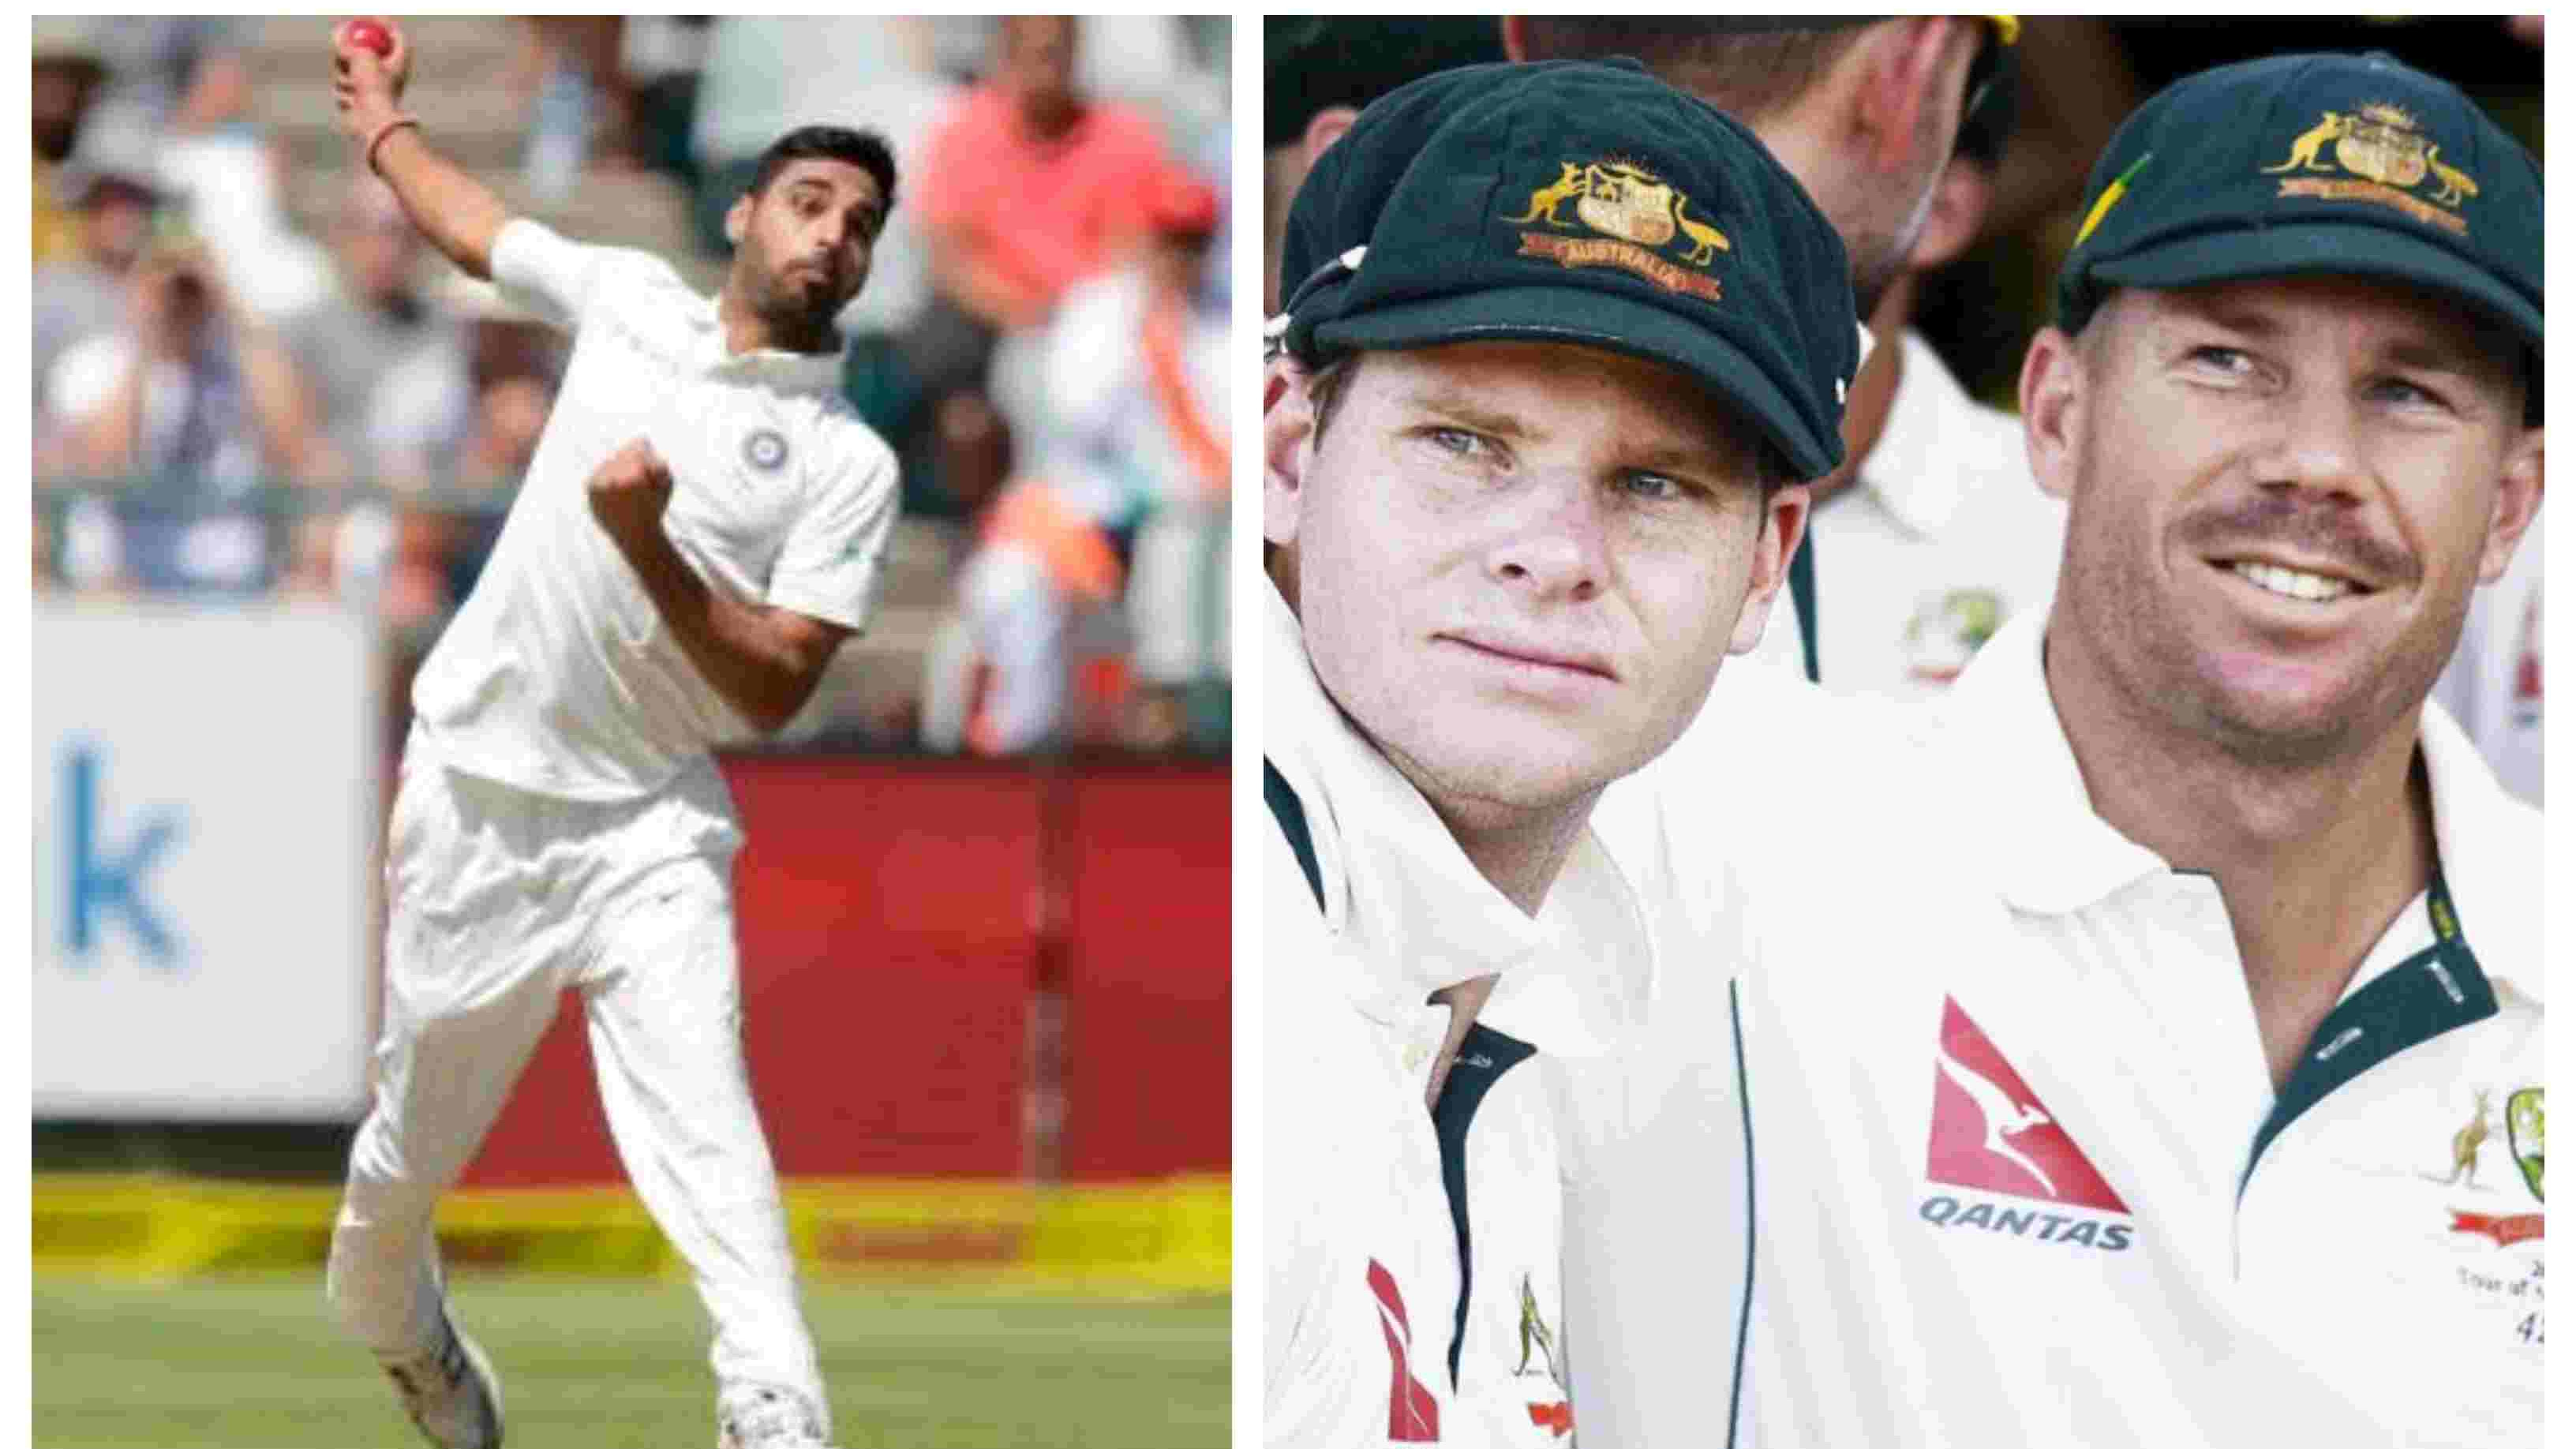 Australia tour will be challenging albeit the absence of Smith and Warner, says Bhuvneshwar Kumar